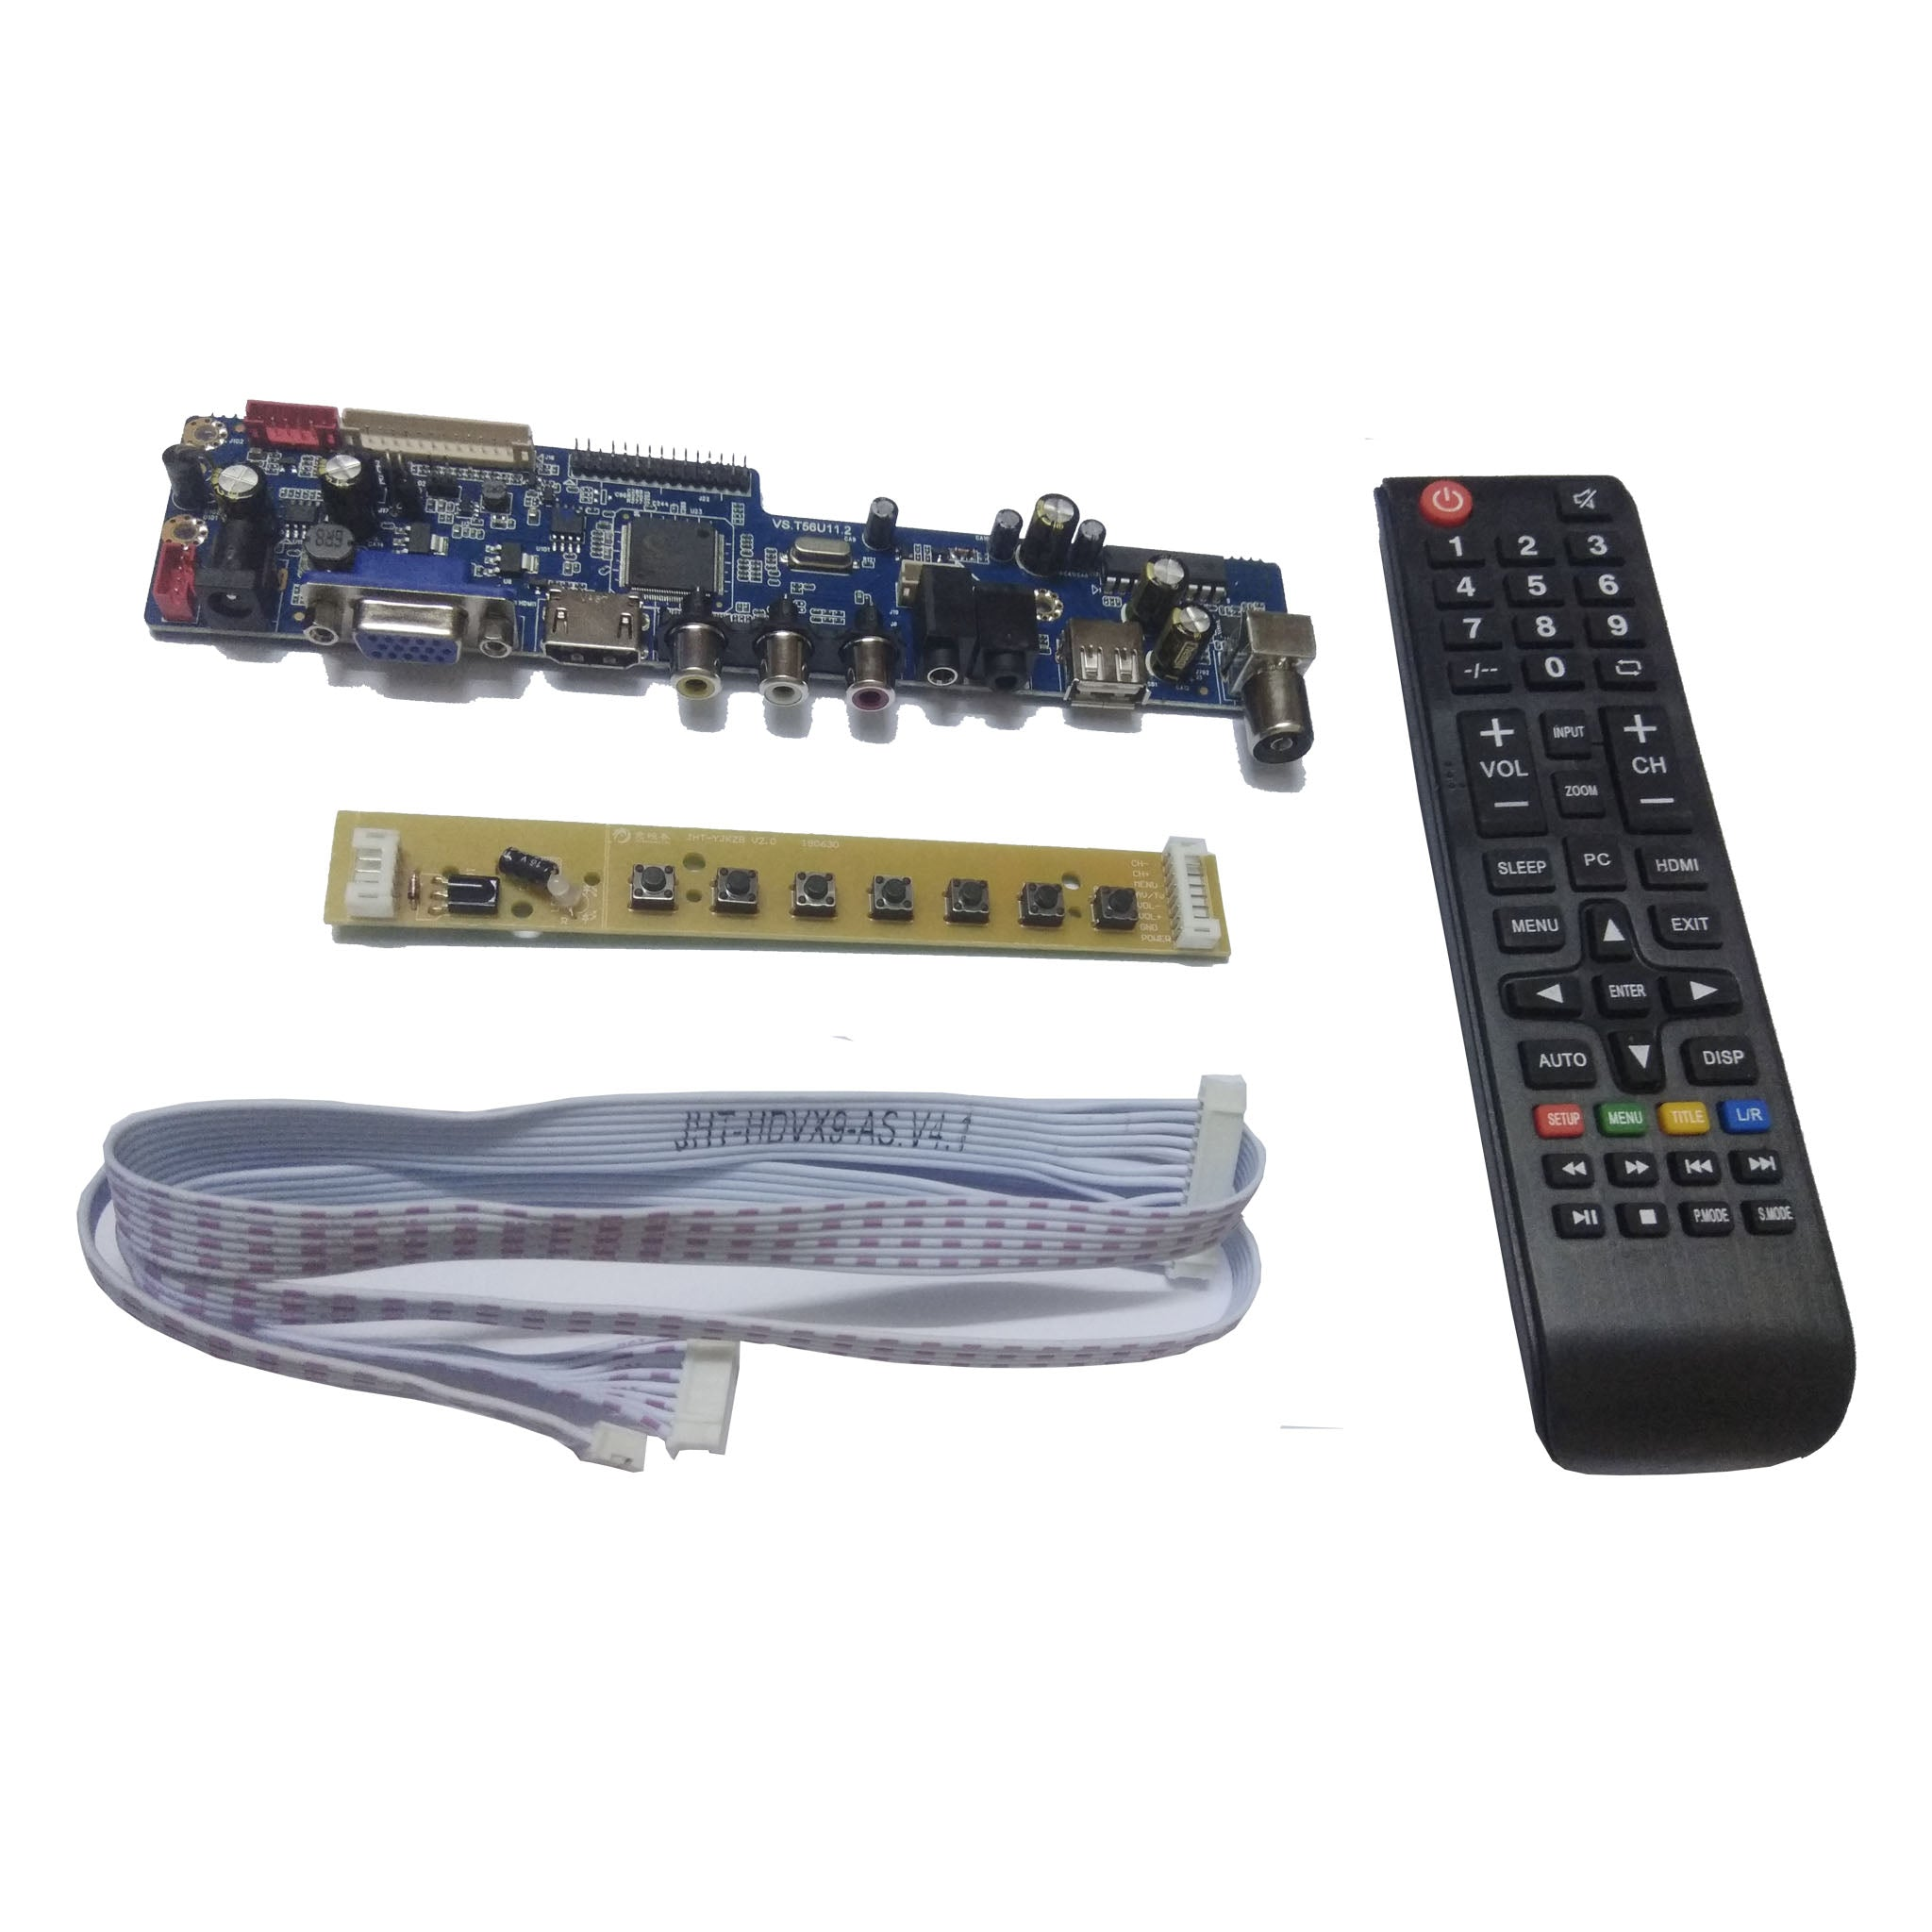 LCD/LED Tv Main Board, Support USB Multimedia Playback, U Disk Updating Support 14 inch  to 32 inch